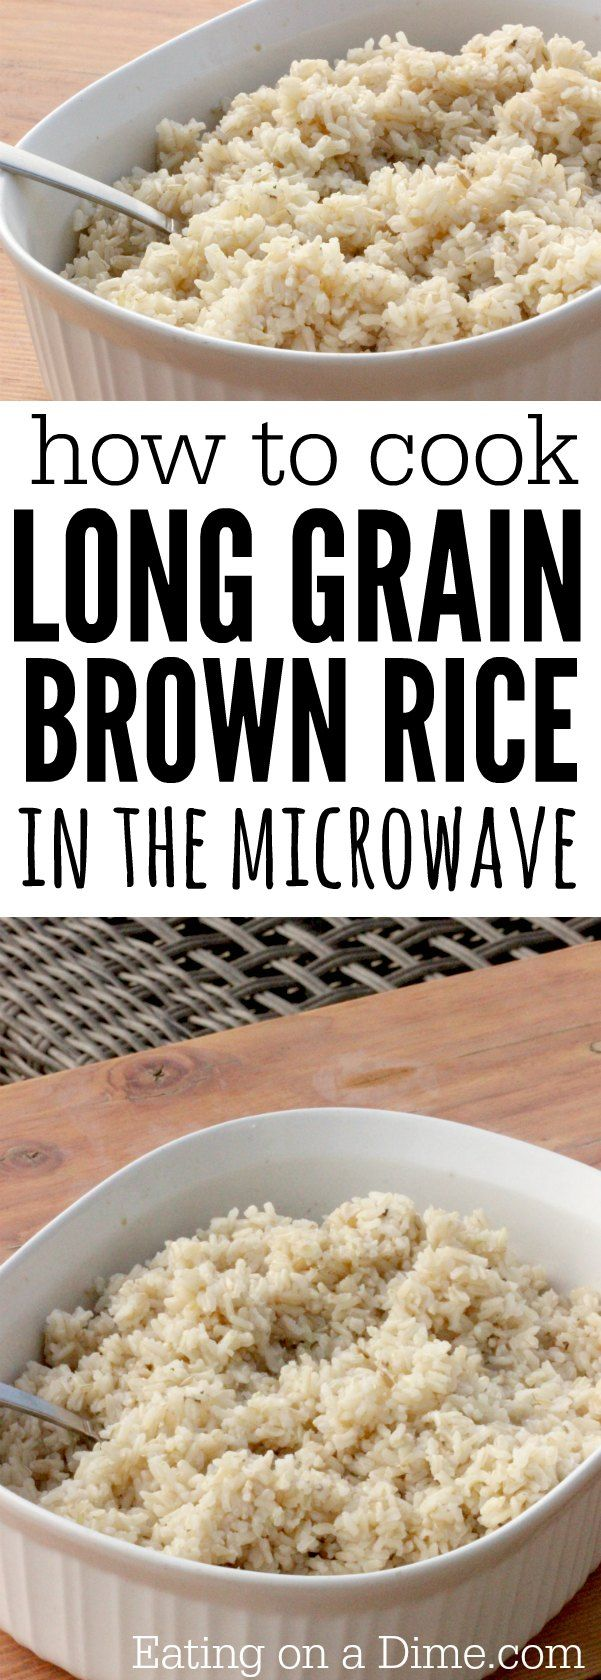 Best 25 brown rice cooker ideas on pinterest pressure cooker how to microwave long grain rice ccuart Images